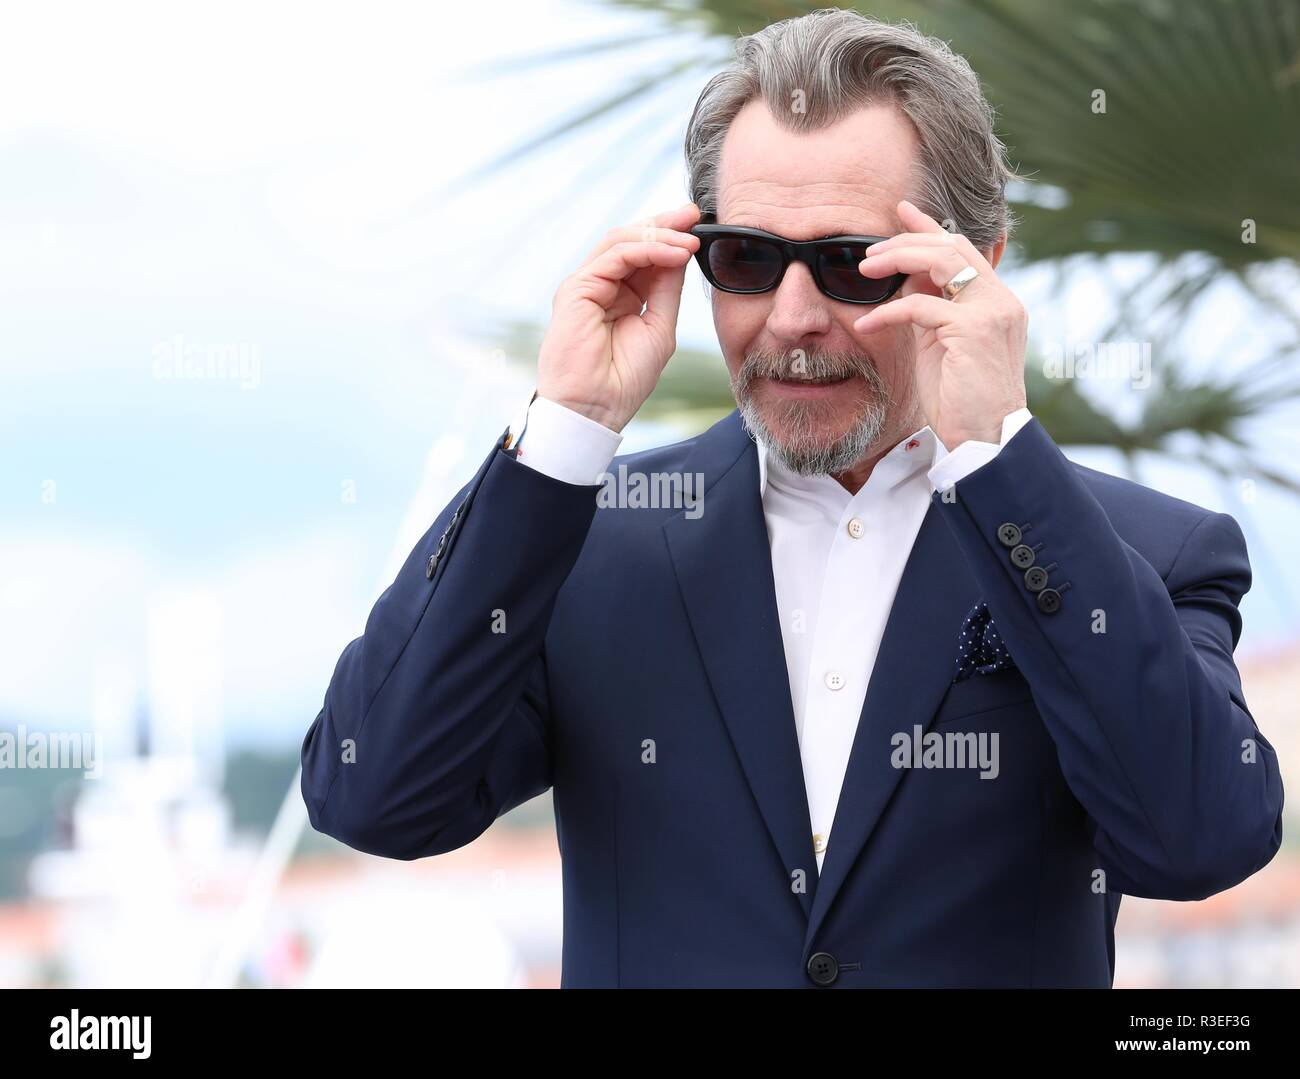 CANNES, FRANCE – MAY 17, 2018: Gary Oldman at the photocall ahead of his Masterclass during the 71st Cannes Film Festival (photo by Mickael Chavet) - Stock Image